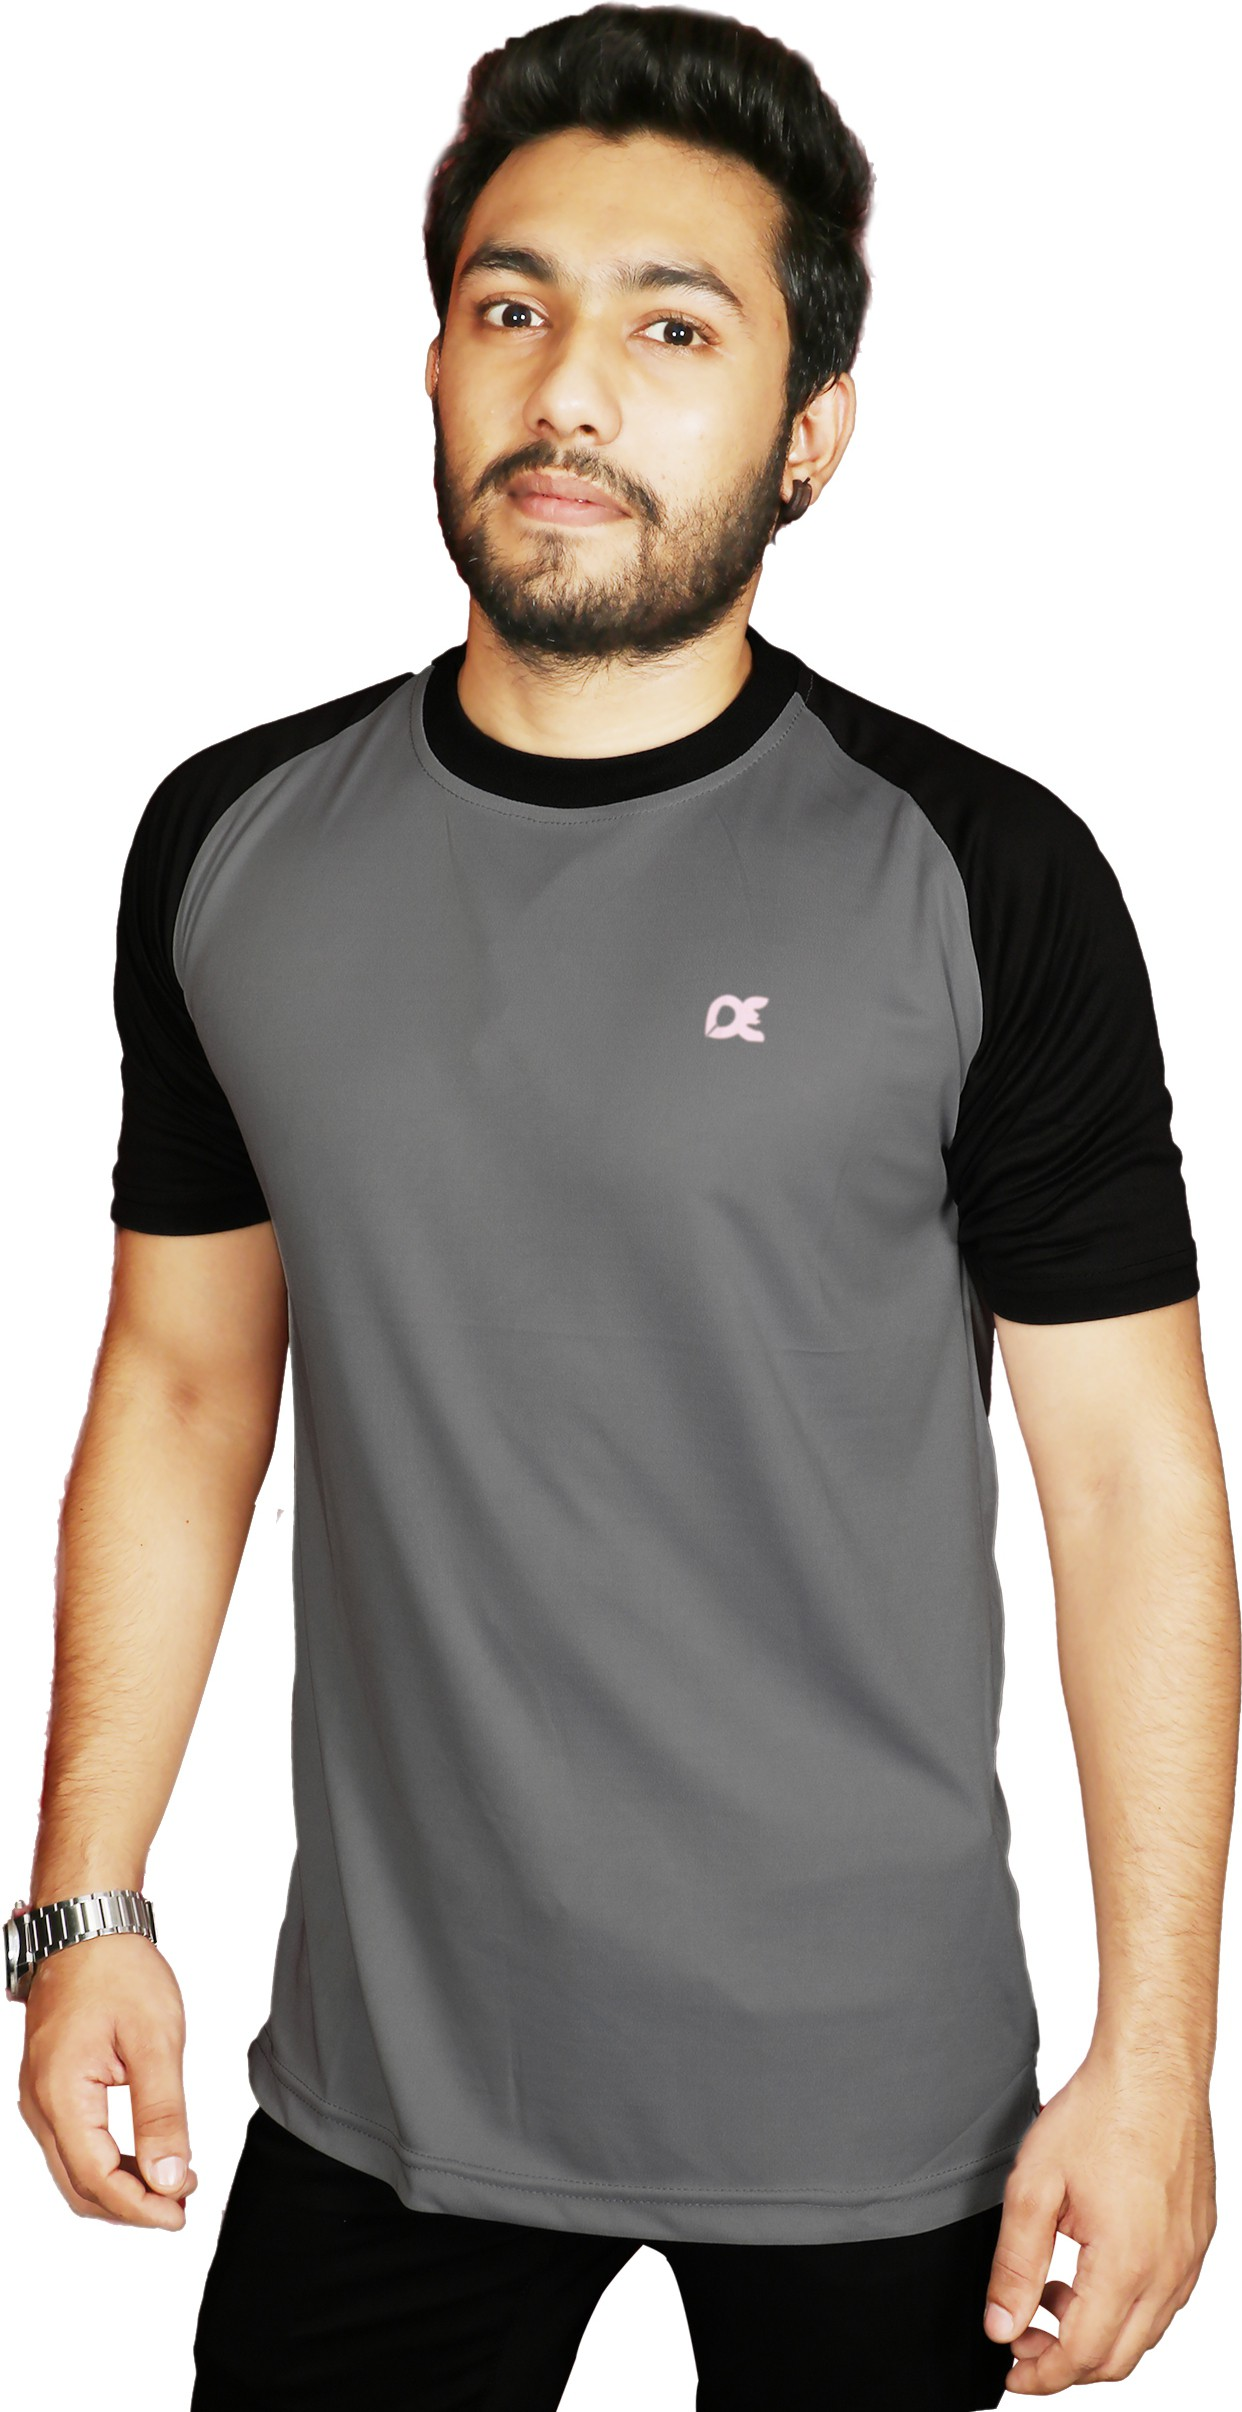 Deals | Mens T-Shirts Reebok, Young Trendz.